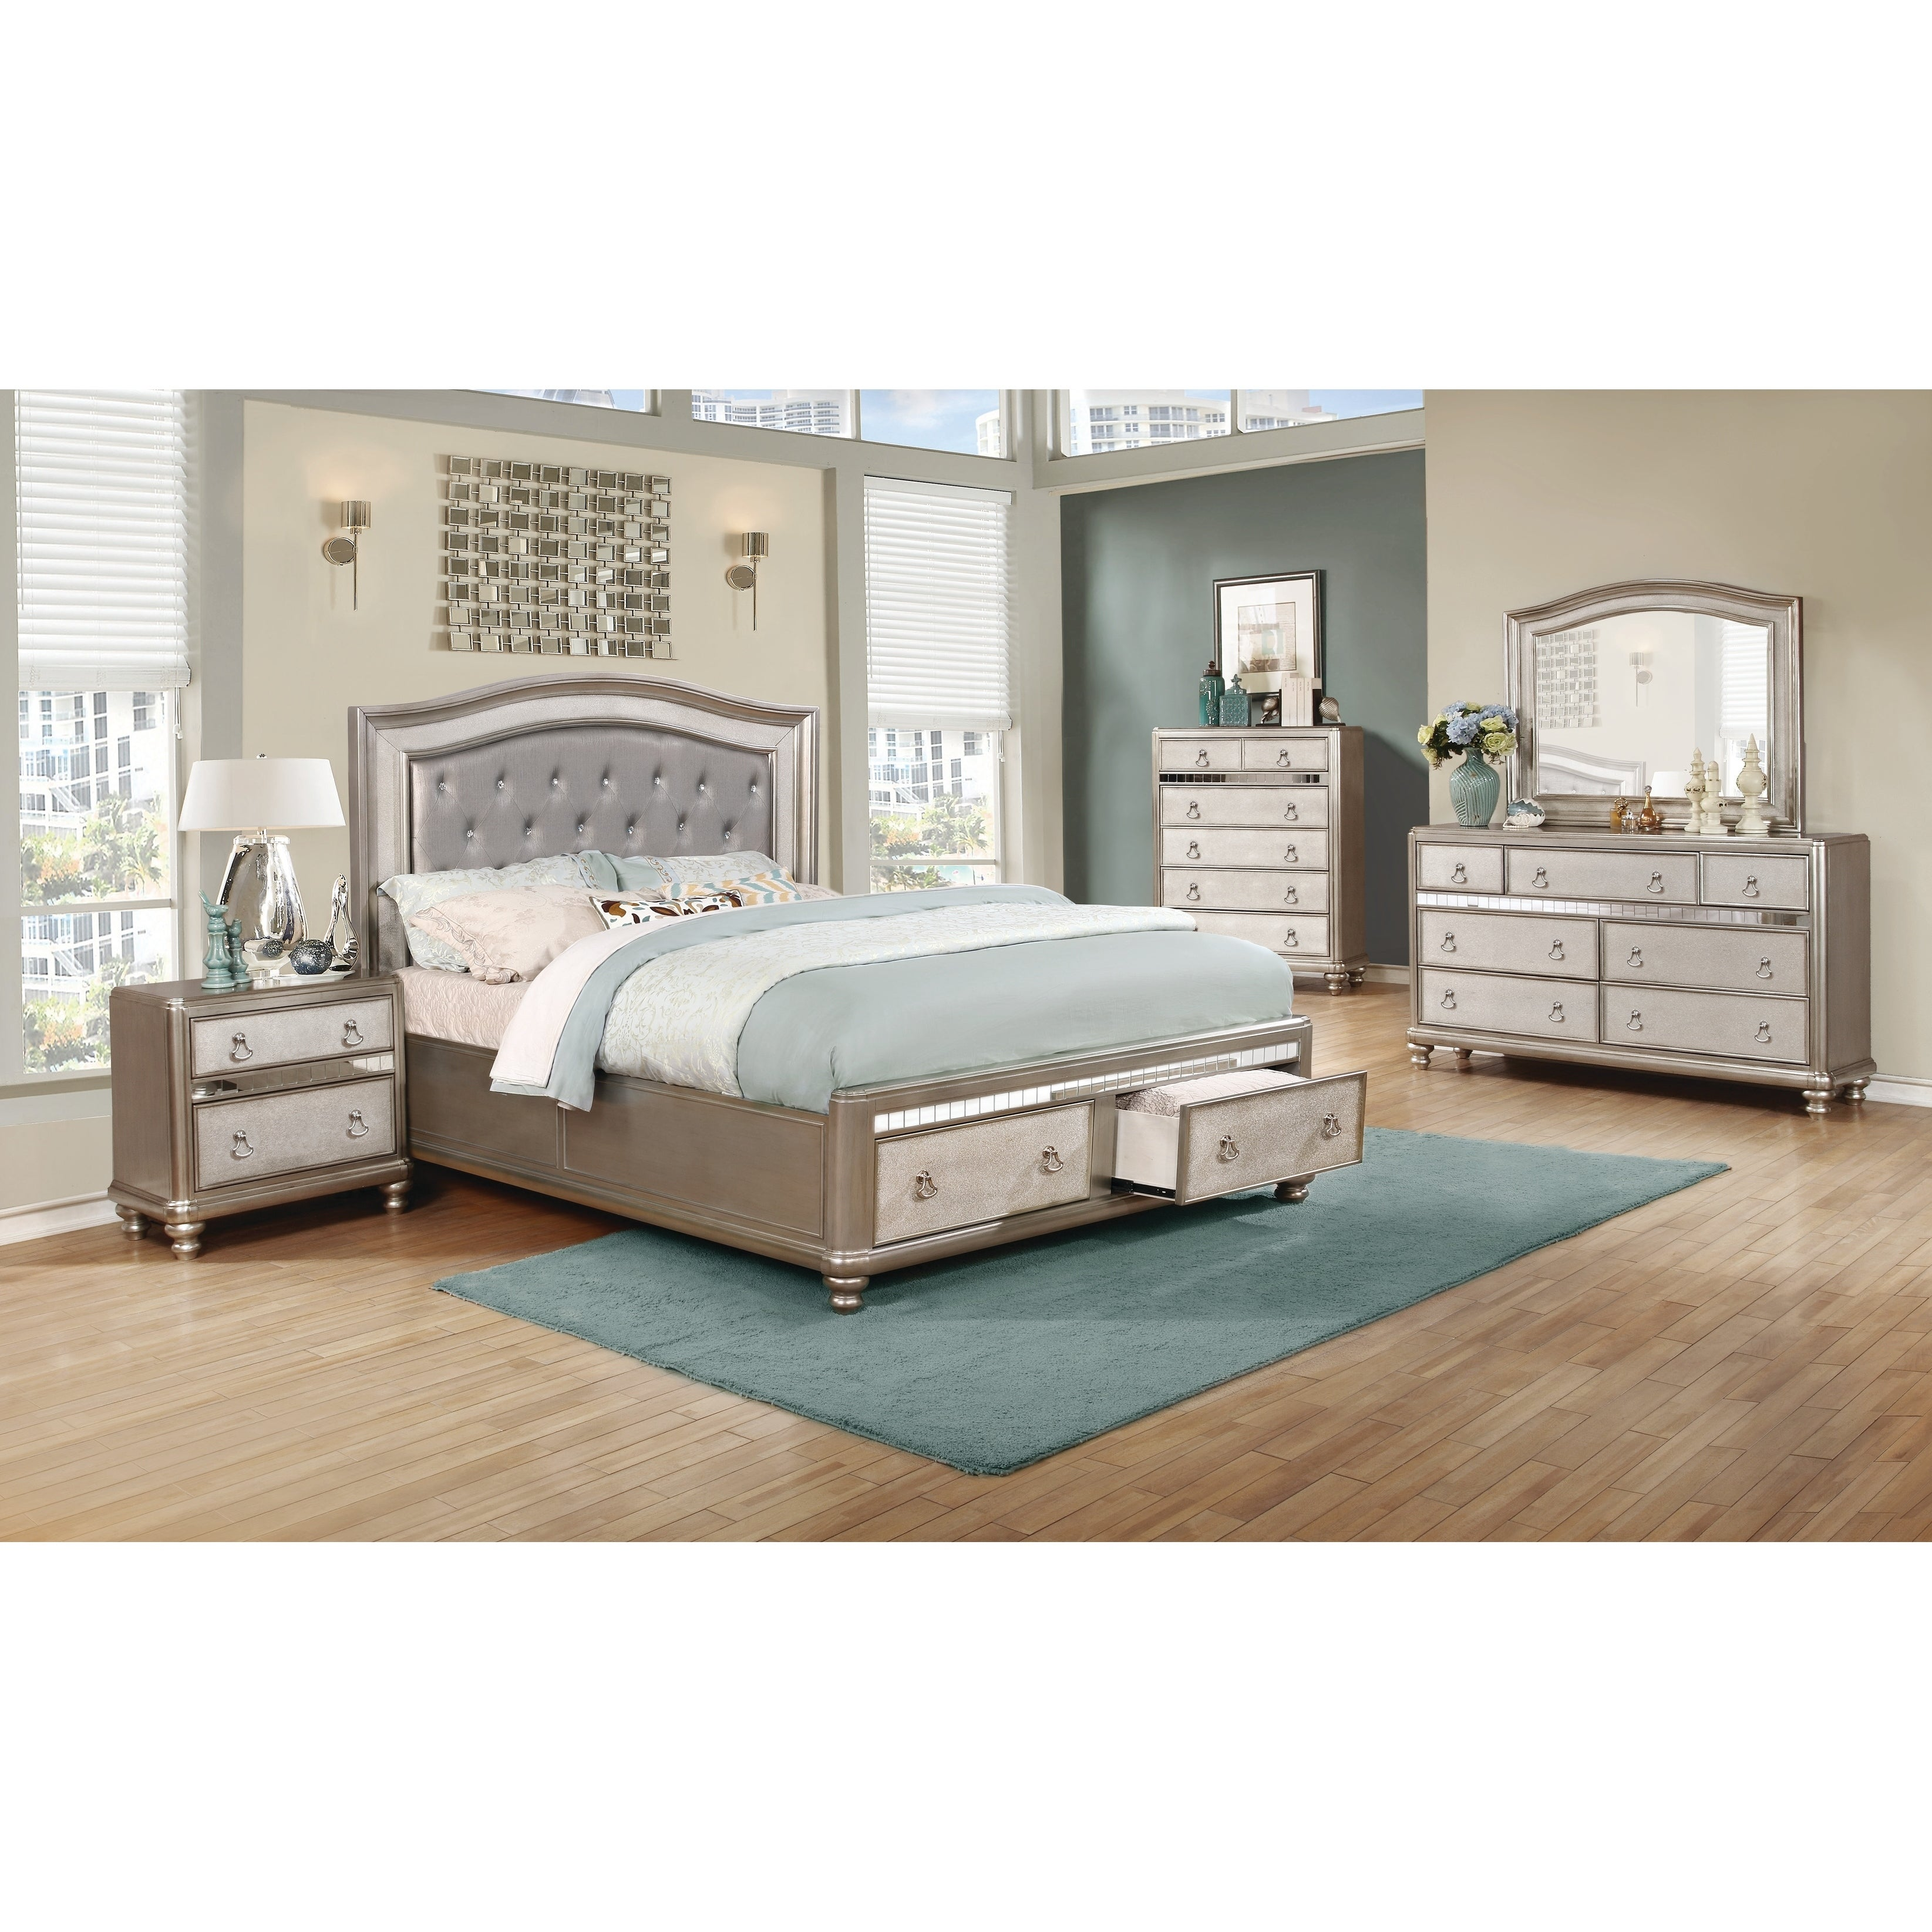 Silver Orchid Arcaro Metallic 4 Piece Bedroom Set With Storage Bed Overstock 23599213